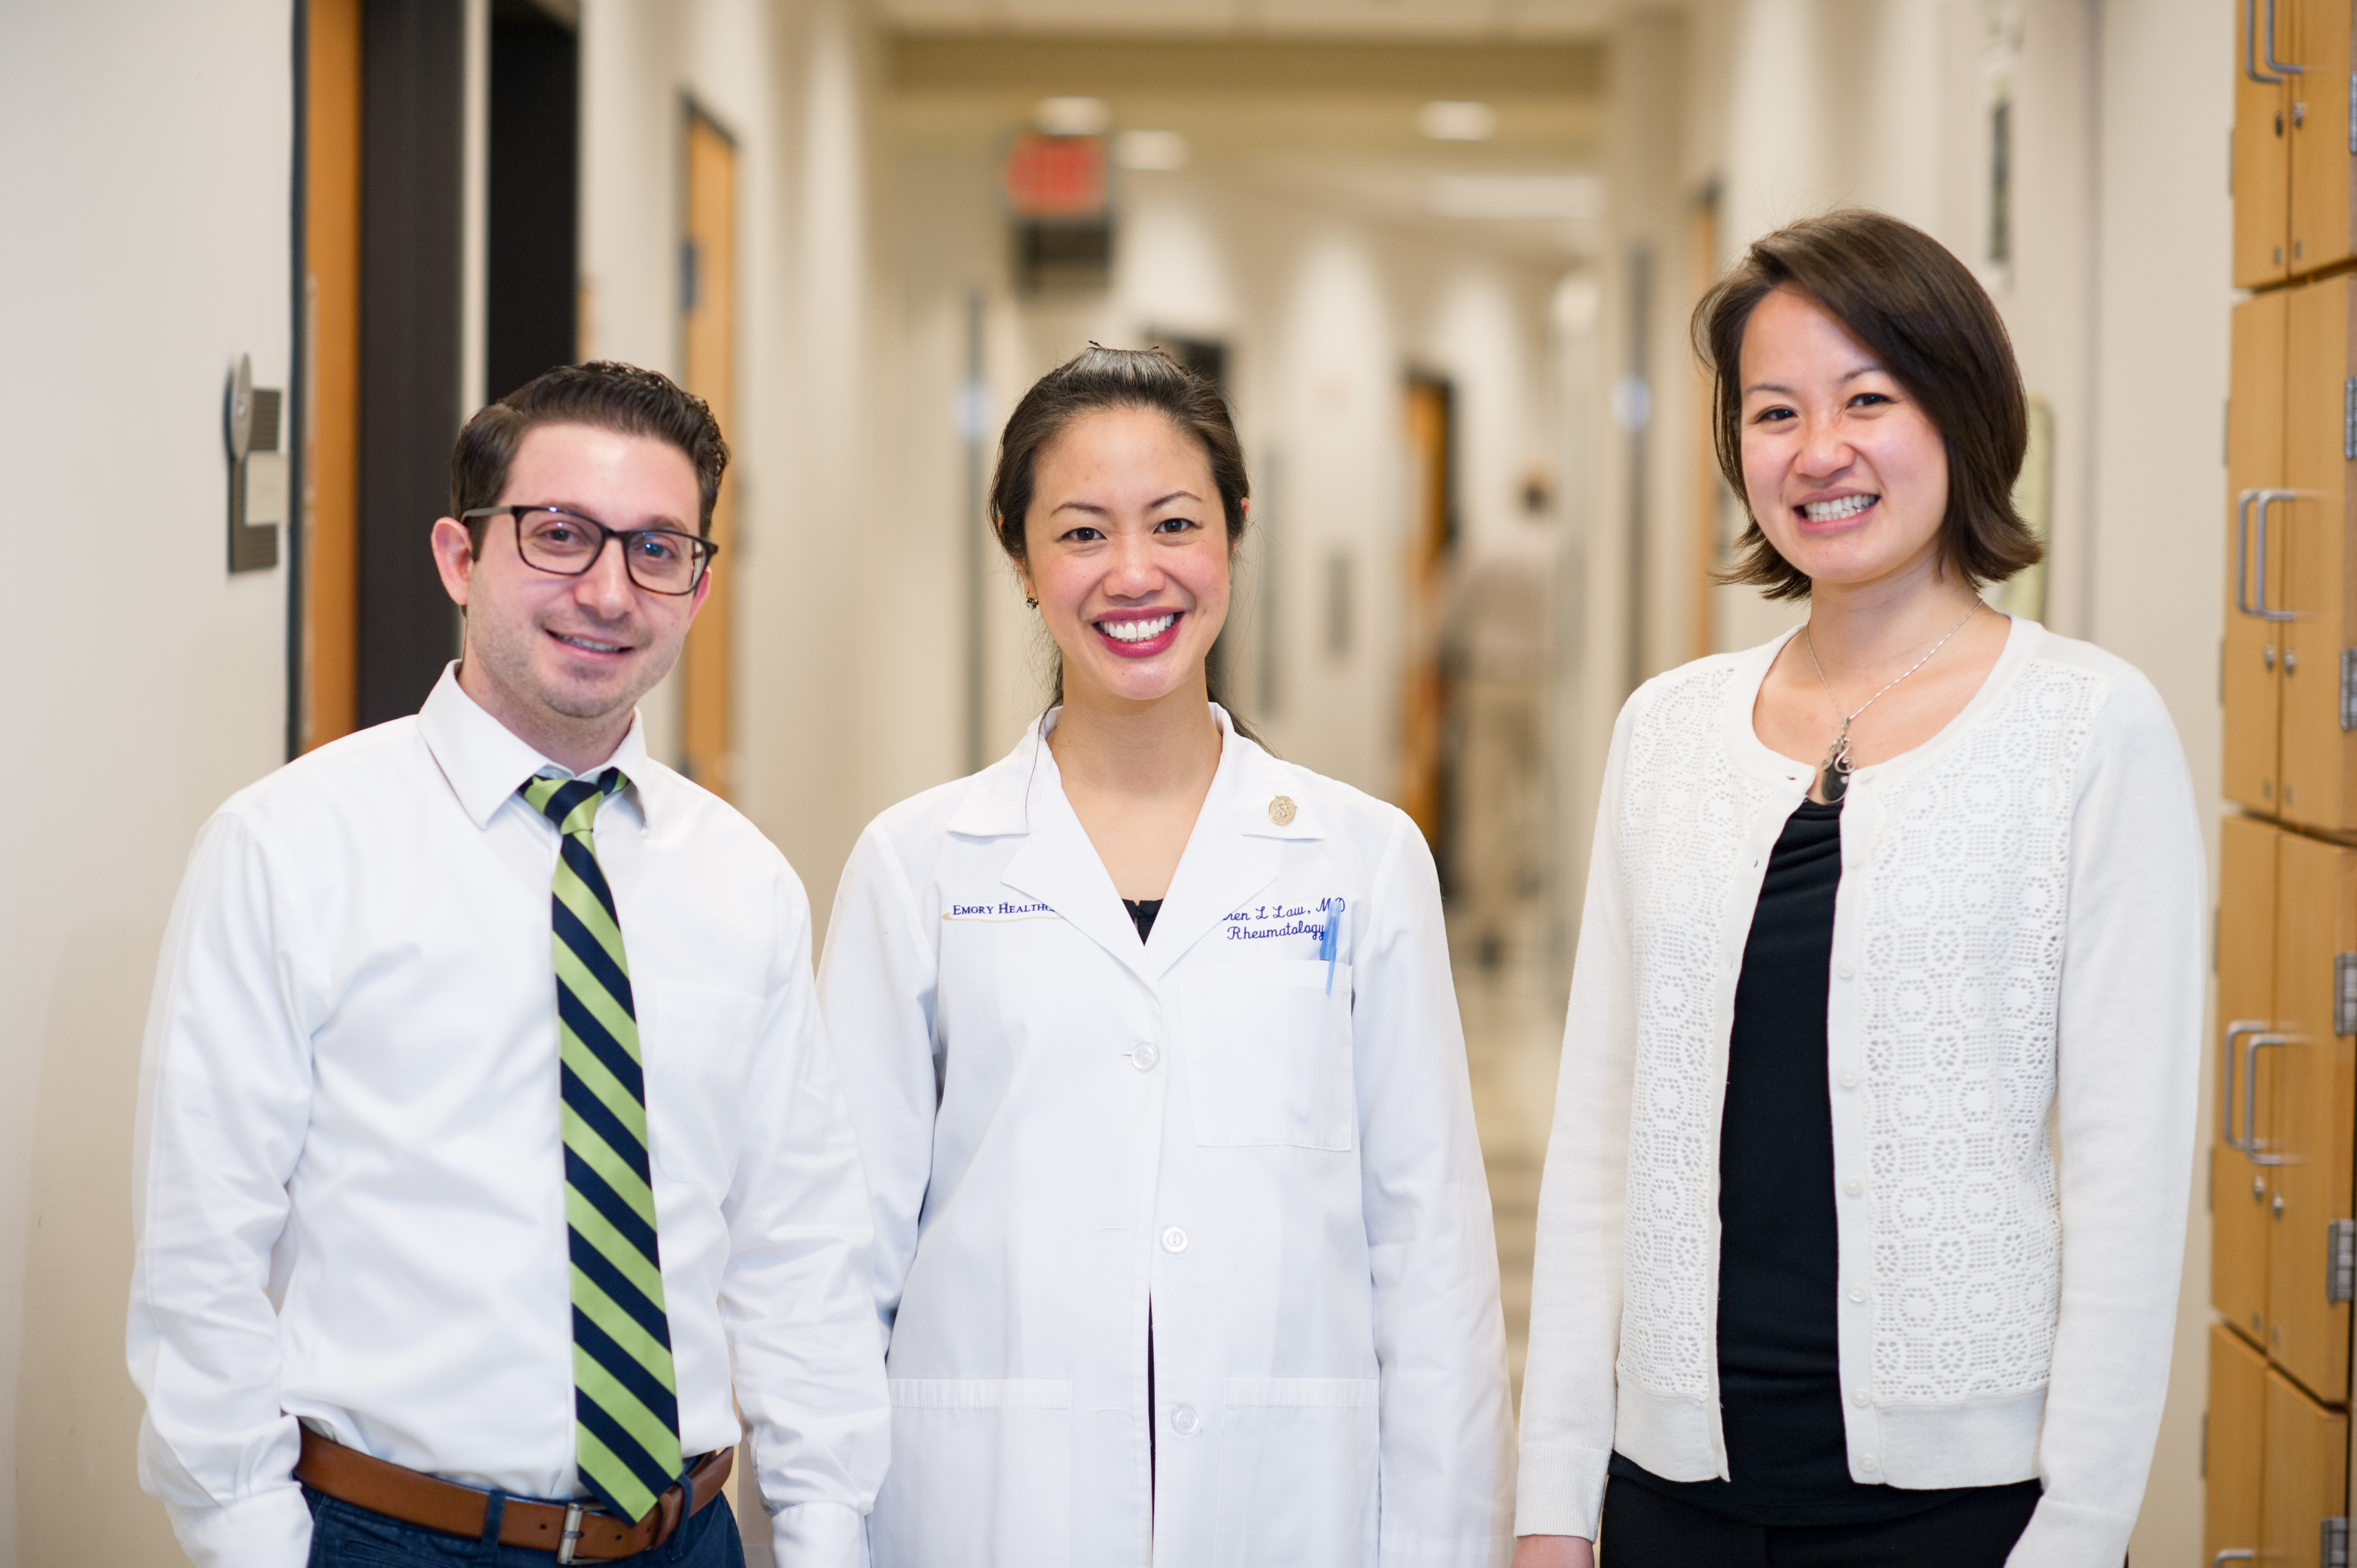 Three rheumatologists from the labs at Emory University